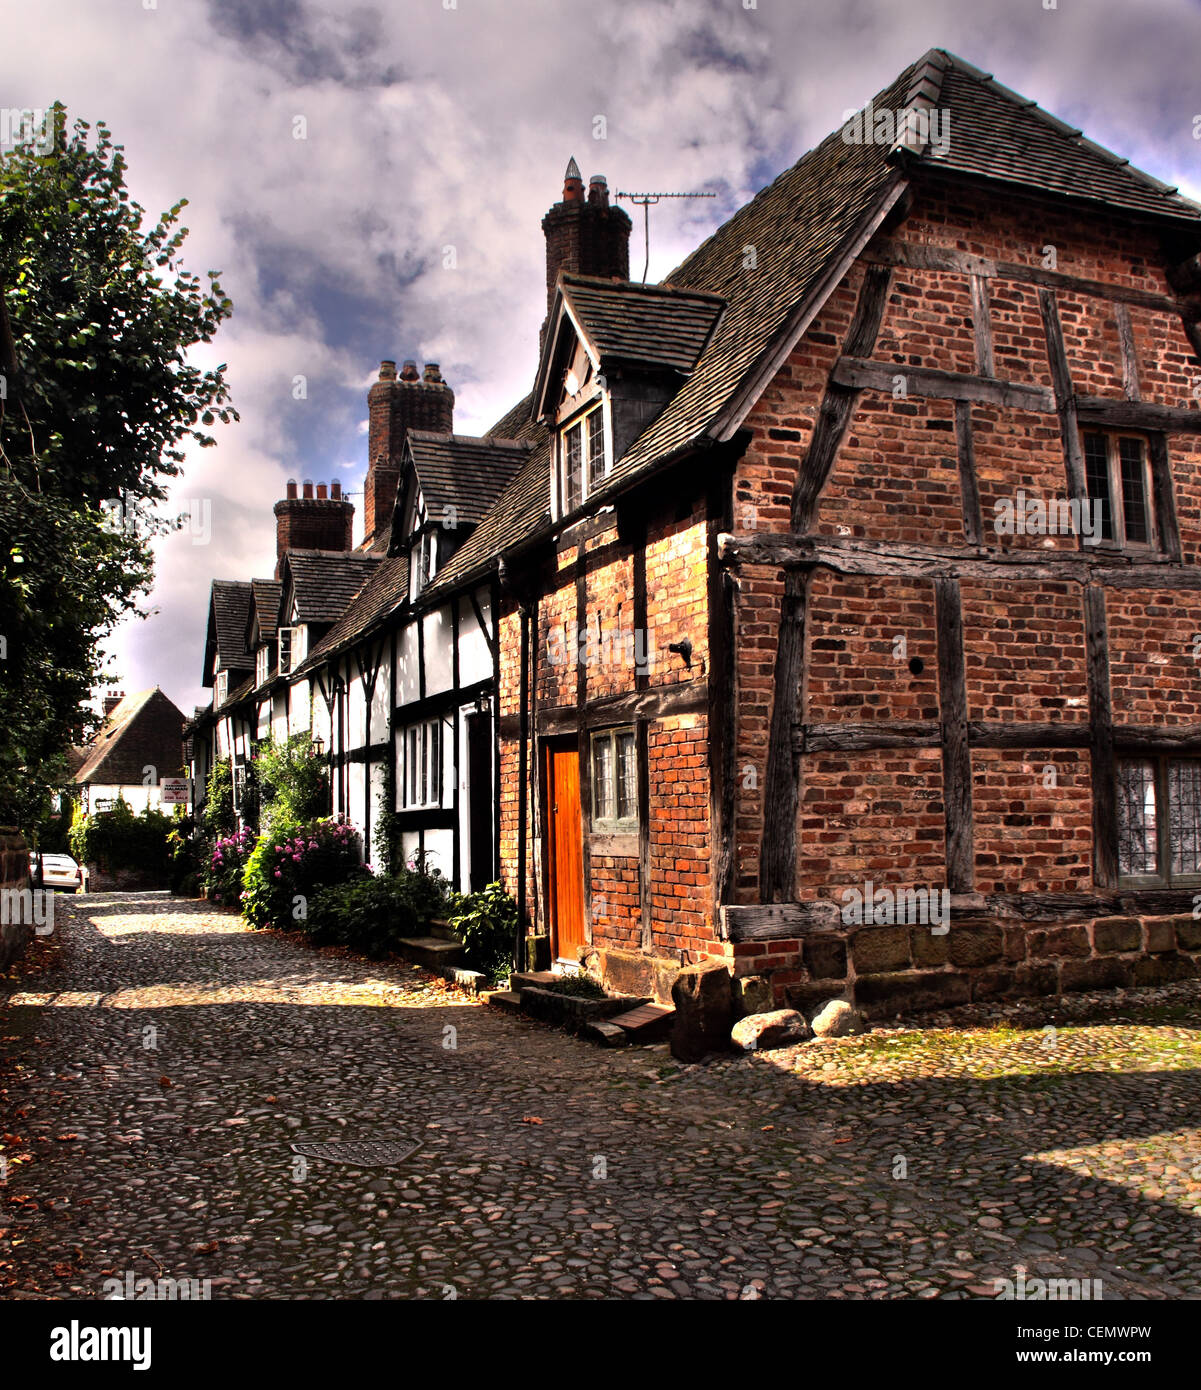 Cottages on Smithy Lane,Great Budworth Village,villages,Cheshire,England,UK,Rural,timber,framed,gotonysmith,brick,wood,construction,pre-1500,pre-1600,pre-1700,pre-1800,haphazard,Chester,summer,sky,picturesque,tourist,destination,village,hall,church,cobbles,cobbled,street,quaint,Great Budworth civil parish and village,4 miles (6.4 km) north of Northwich,England,within,the,unitary,authority,of,Cheshire,West,and,Chester,and,the,ceremonial,county,of,Cheshire.,It,lies,off,the,A559,road,east of Comberbach,northwest,of,Higher,Marston,and,southeast,of,Budworth,Heath.,Until,1948,Great,Budworth,was,part,of,the,Arley,Hall,estate.,The,Grade,I,listed,St,Mary,and,All,Saints,Church,is,located,in,the,village.,The,village,is,a,popular,location,for,films,and,television,including,Cluedo,and,more,recently,in,the,Natwest,advert.,Arley,Hall,a historic house,is,nearby.,Also,of,note,in,the,area,are,George,and,Dragon,and,Cock,o',Budworth,pubs,54–57 High Street,Dene Cottages,Goldmine House and Belmont Hall,gotonysmith,Buy Pictures of,Buy Images Of